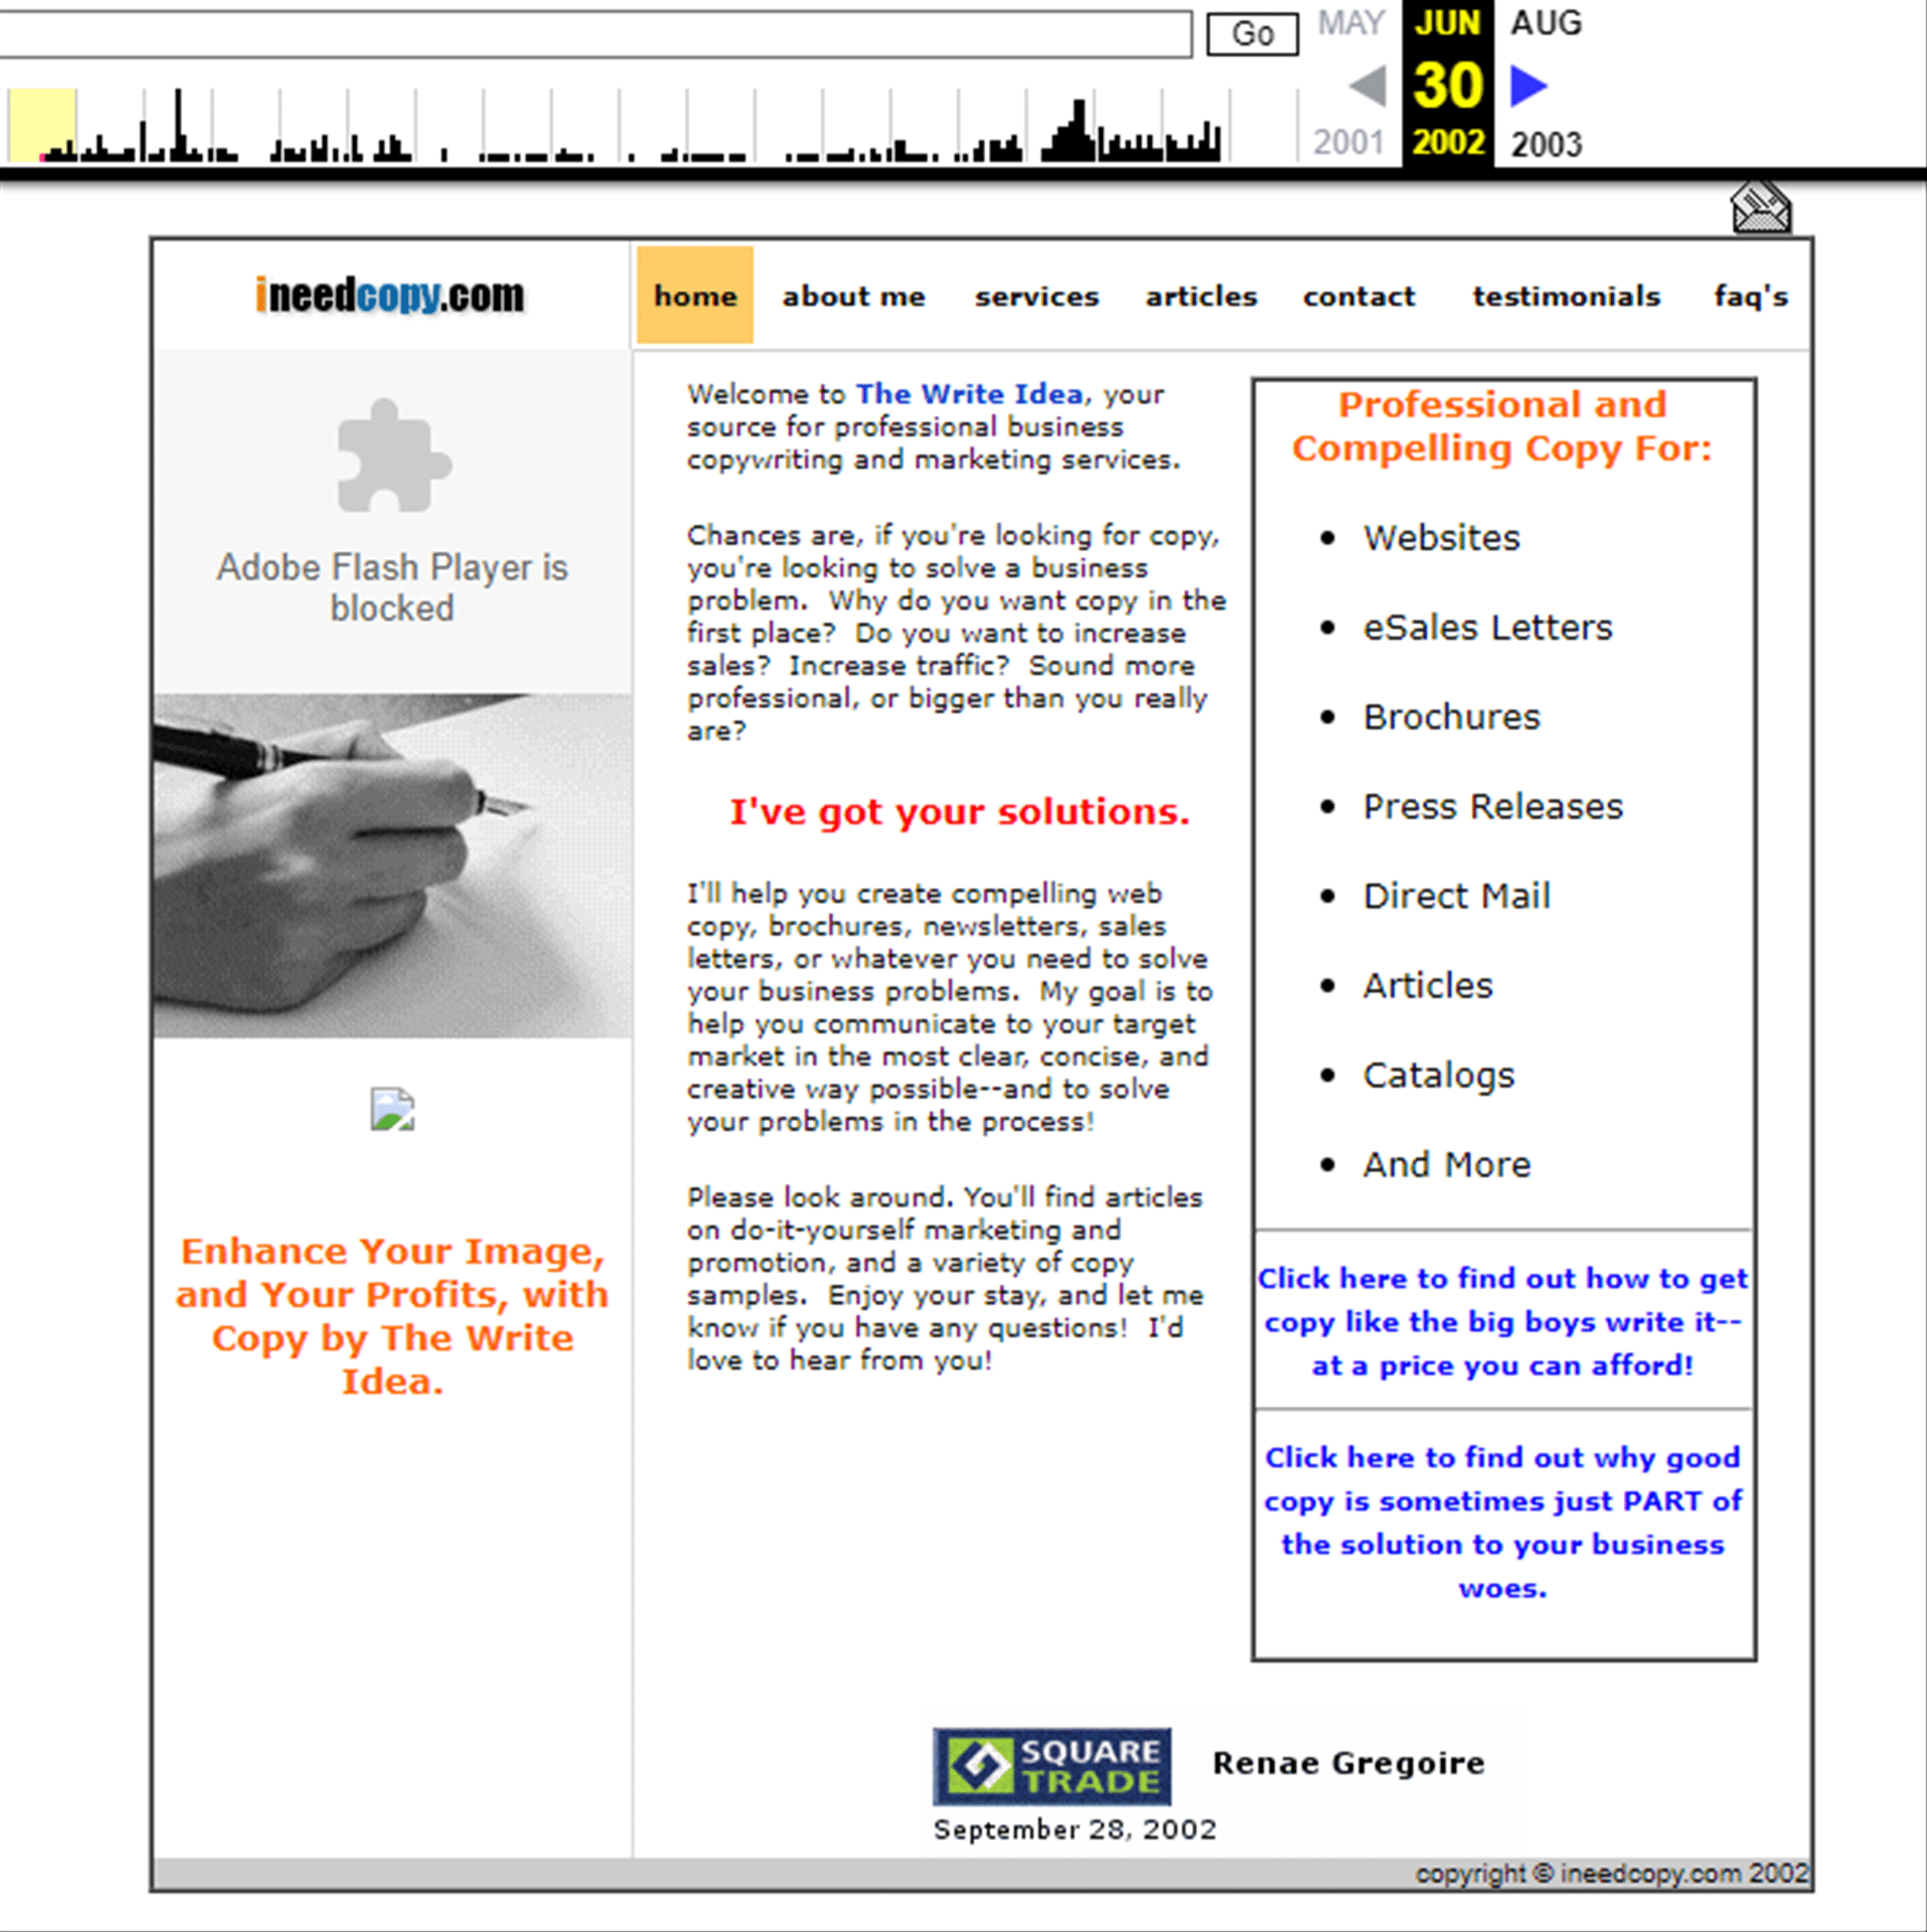 My first website - ineedcopy.com on June 30, 2002